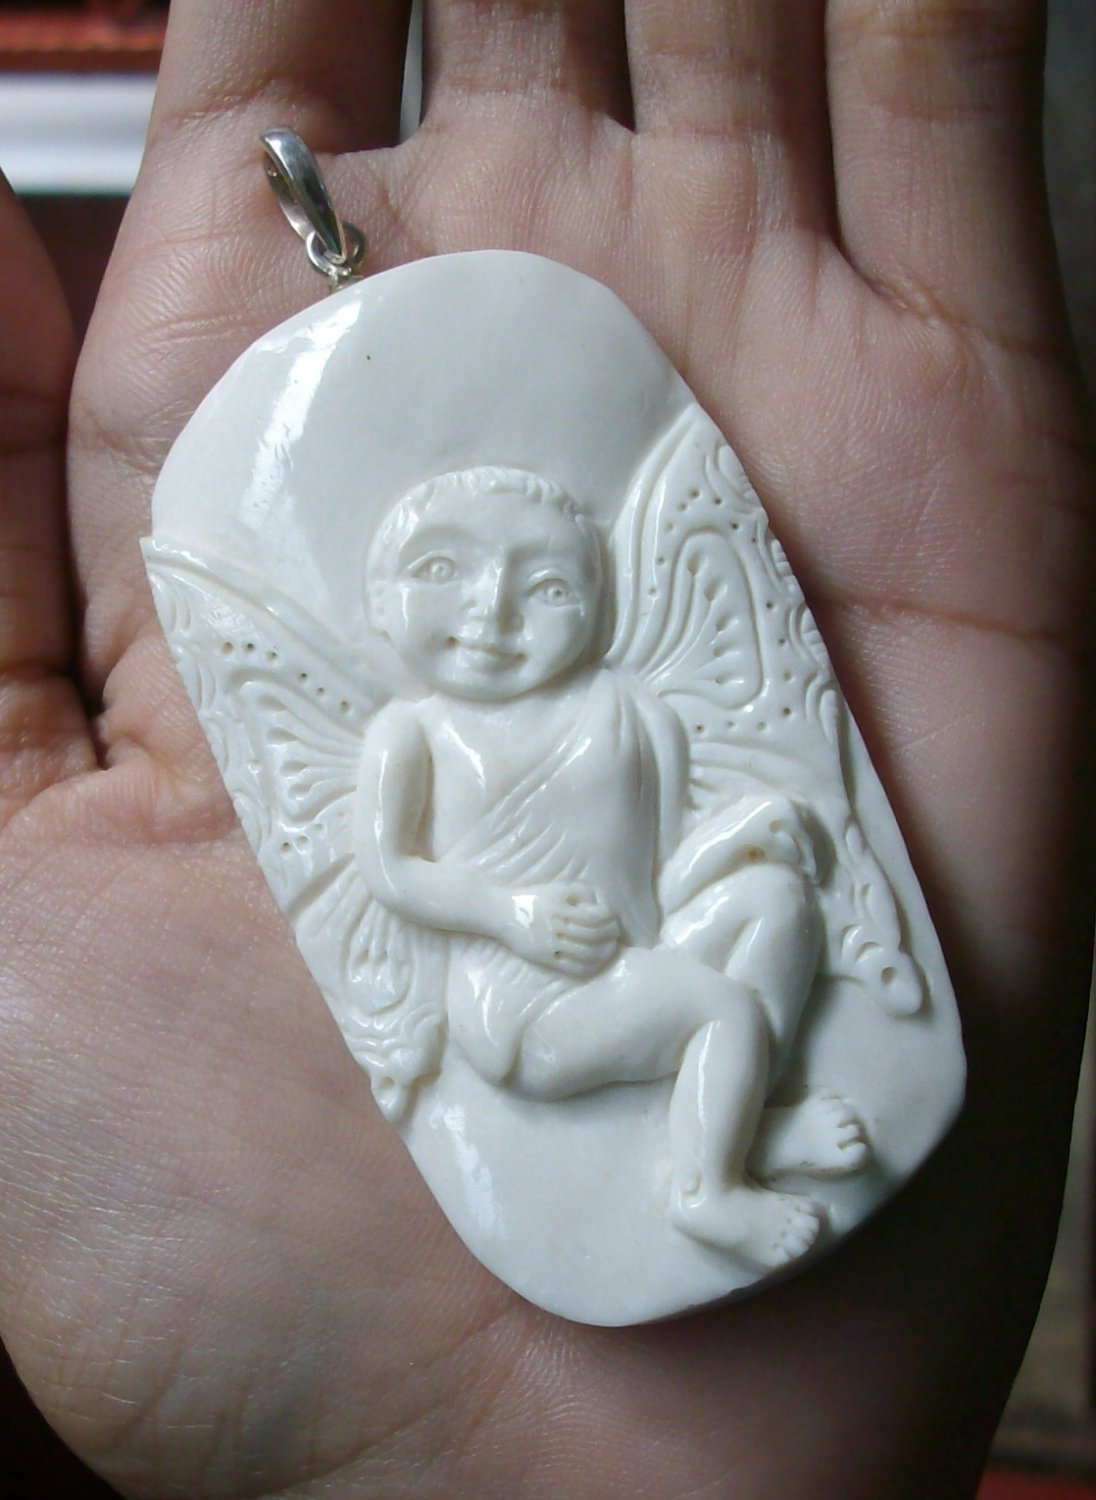 Bali Pendant Necklace Cupid Love Baby Angel From Buffalo Bone Carving w/ Silver Bail 925#r380